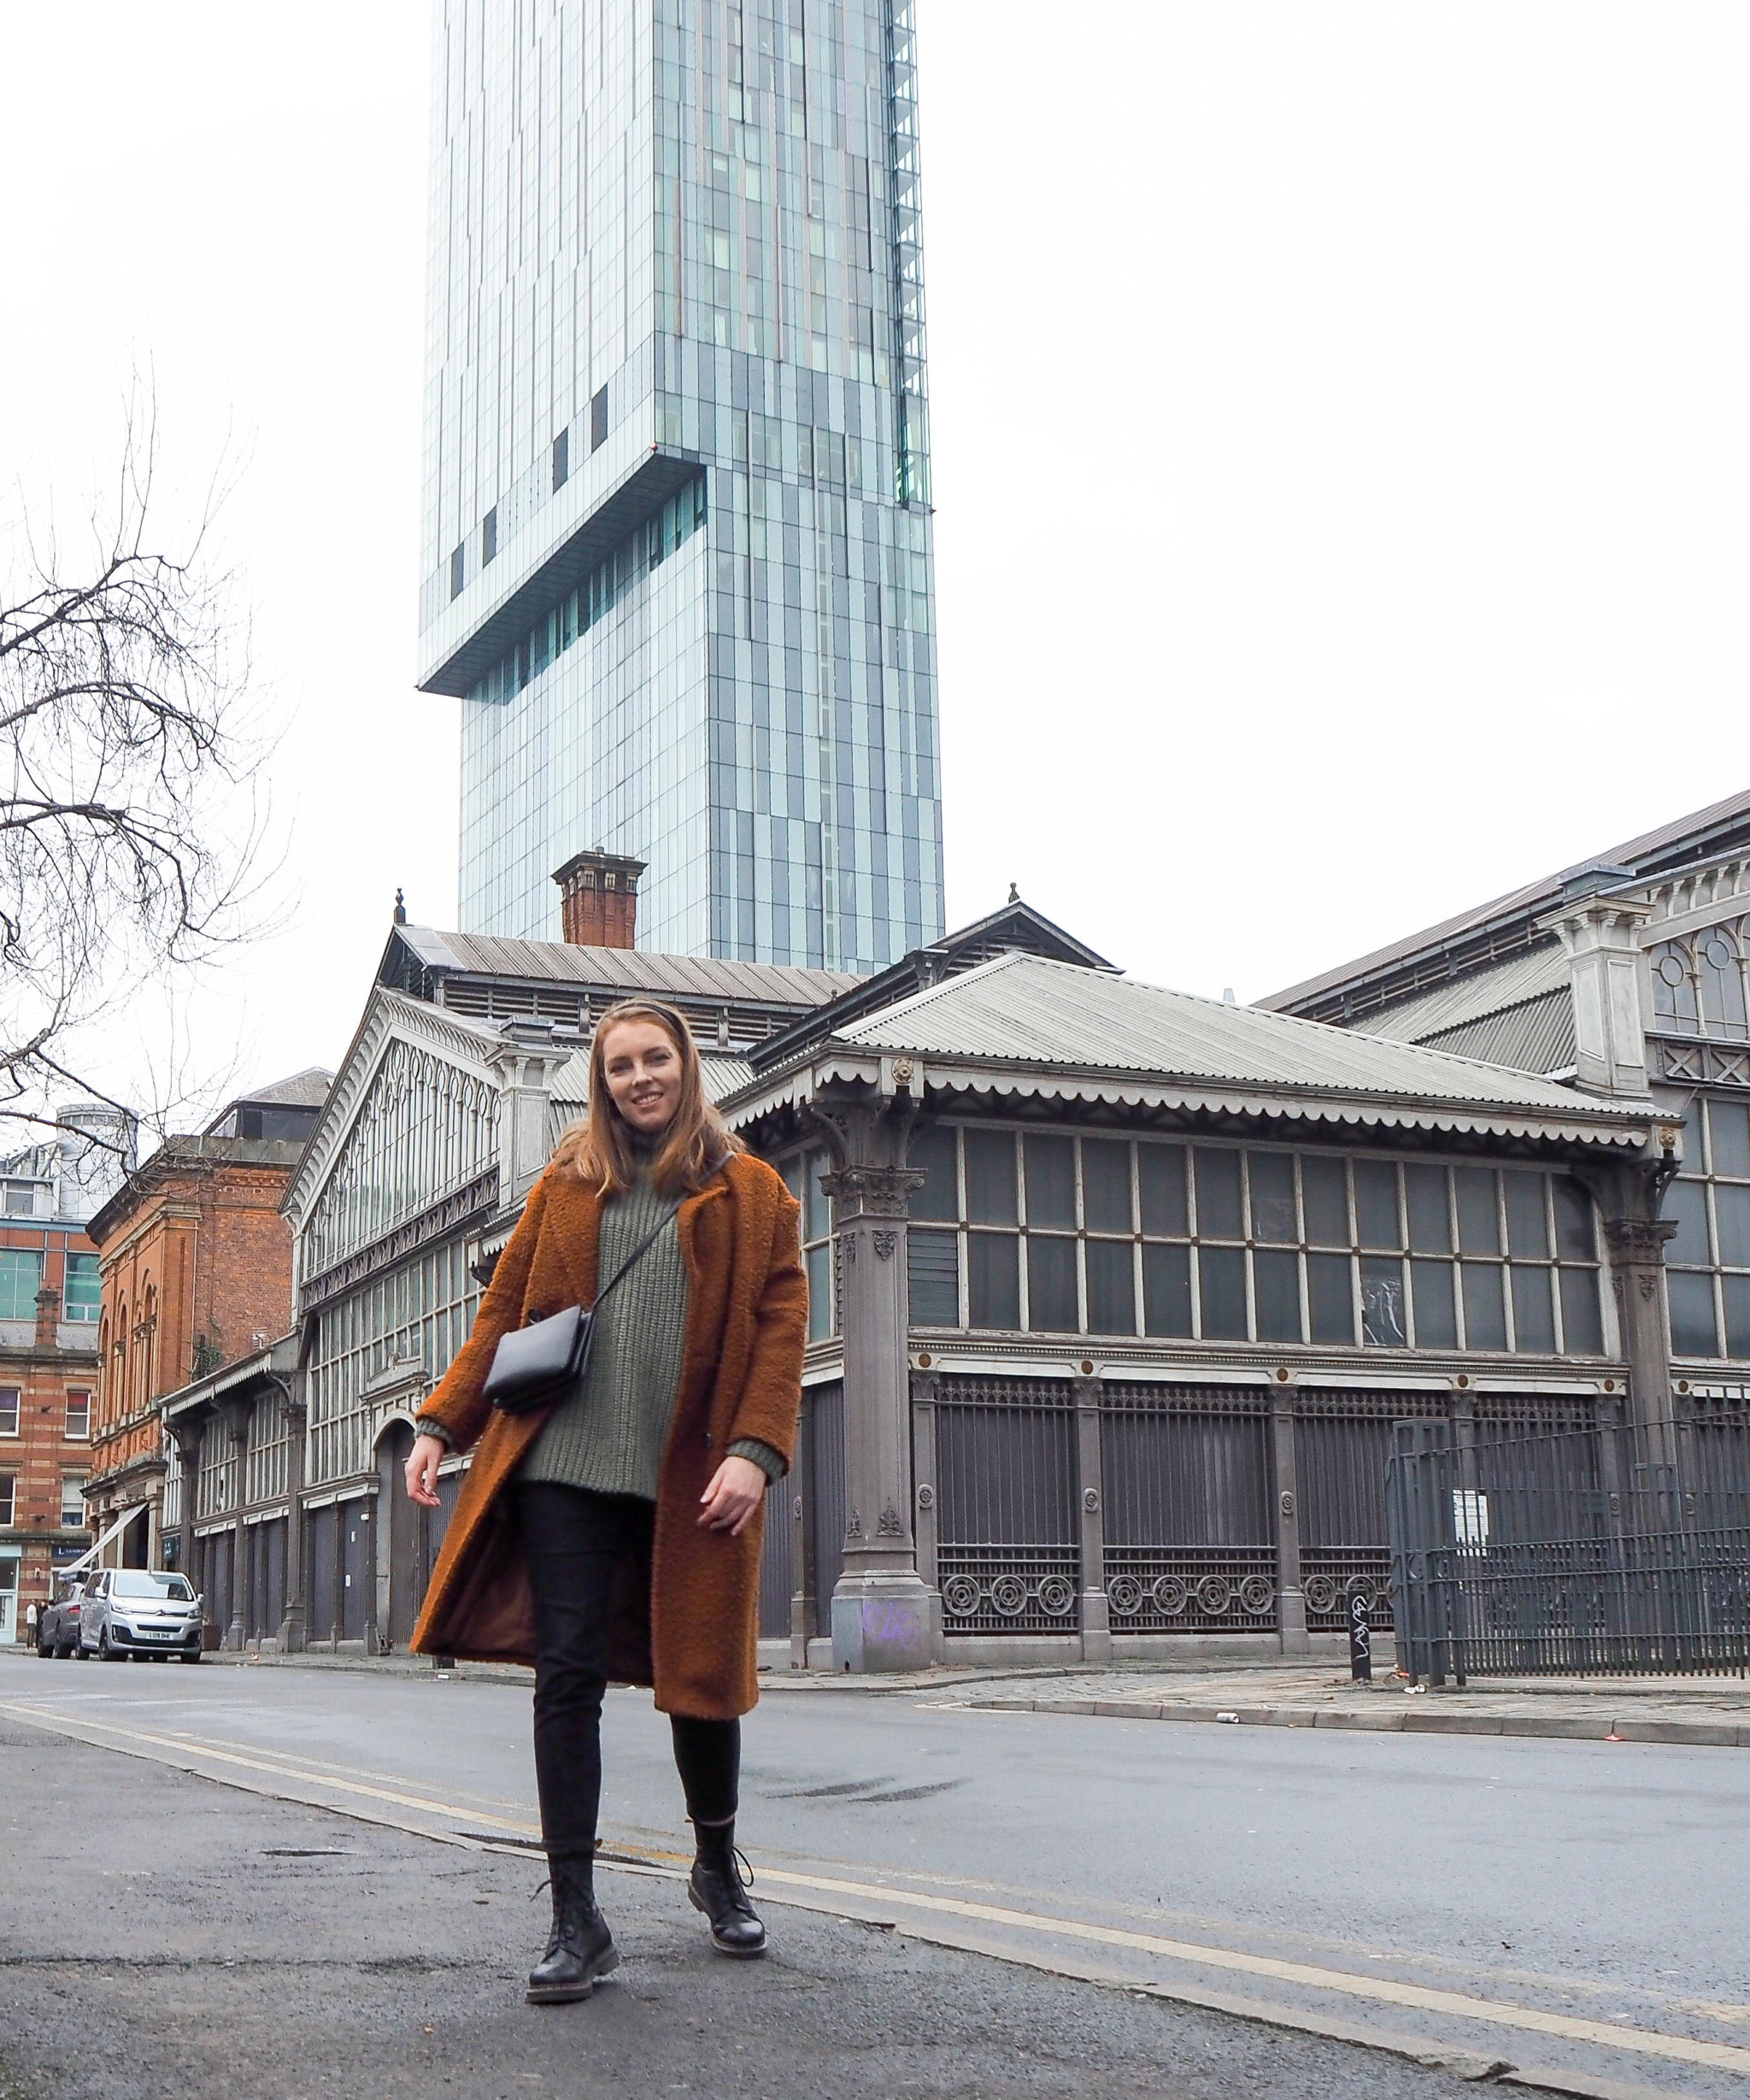 Manchester street style photography